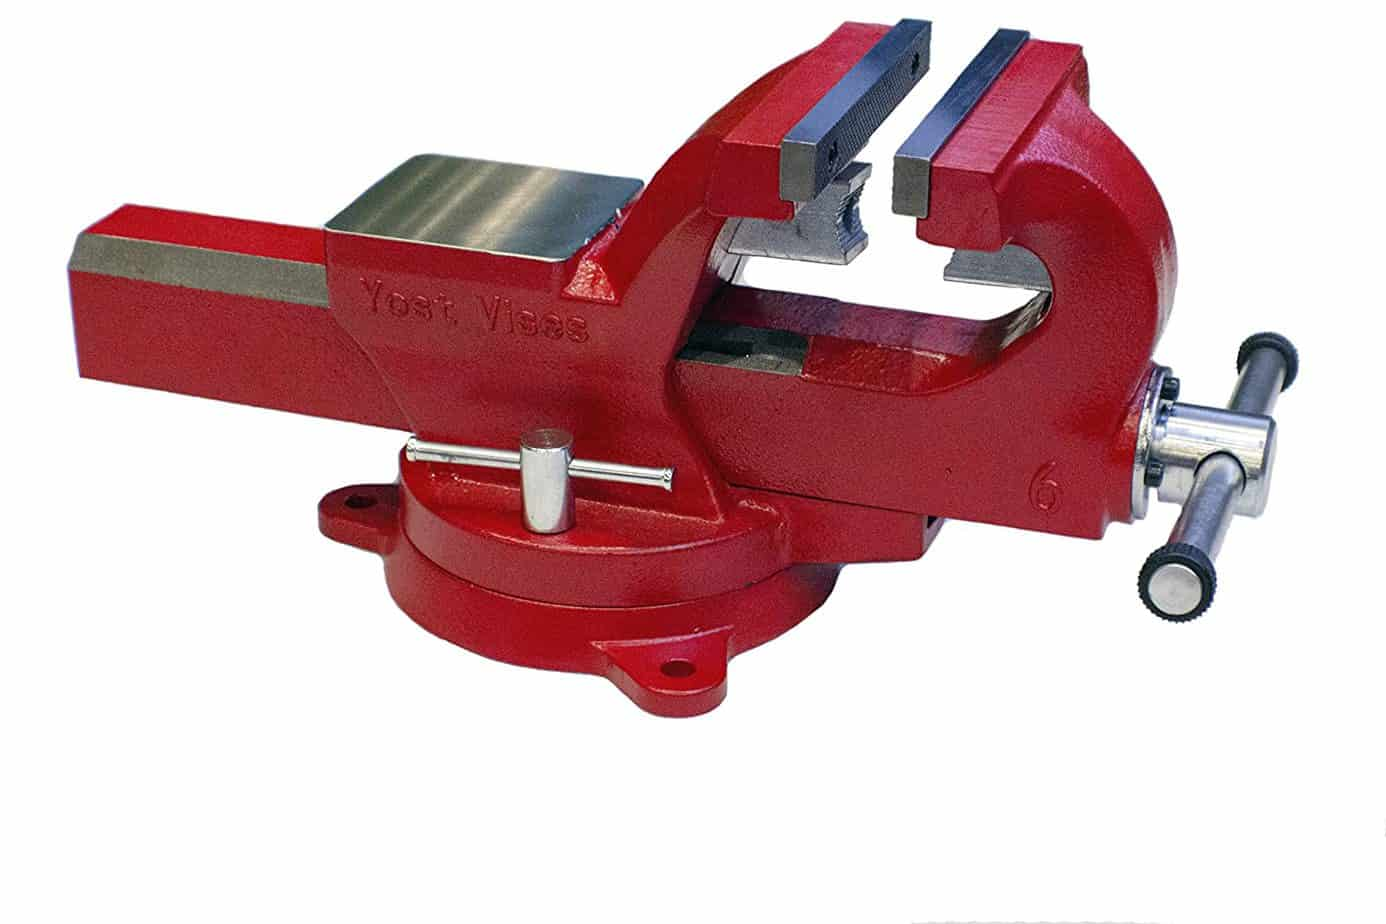 yost woodworking clamp